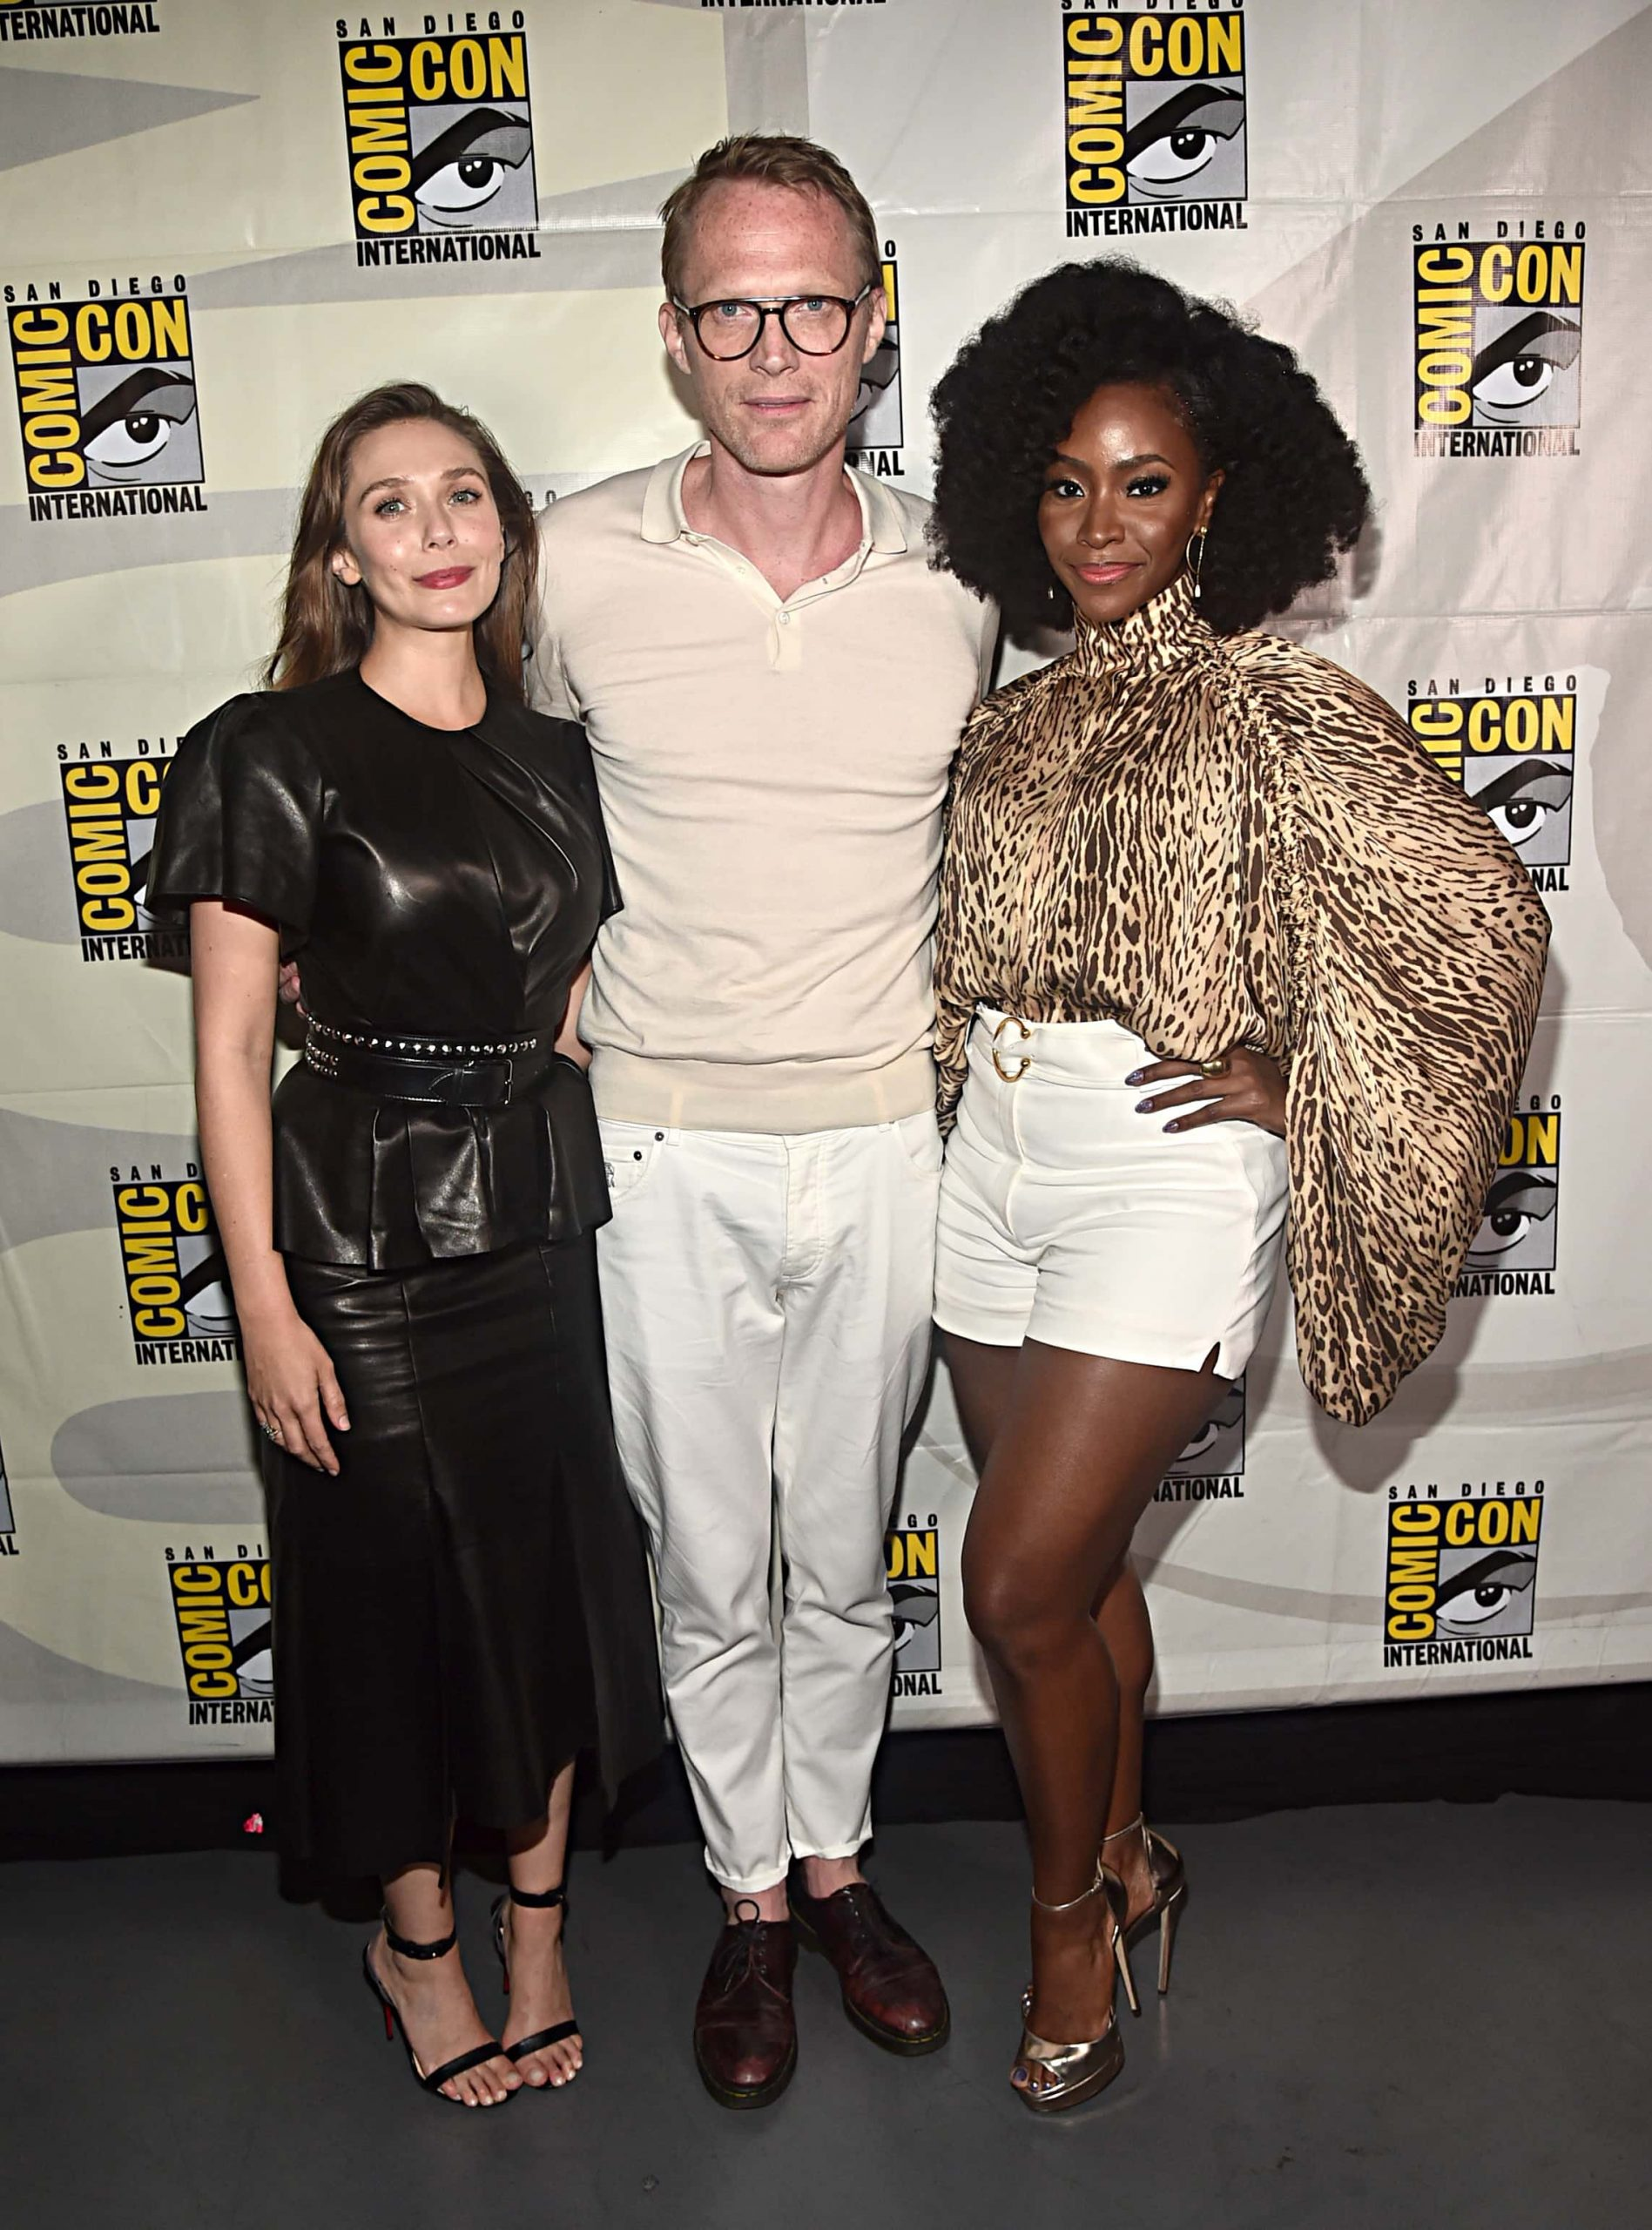 Elizabeth Olsen, Paul Bettany and Teyonah Parris at SDCC